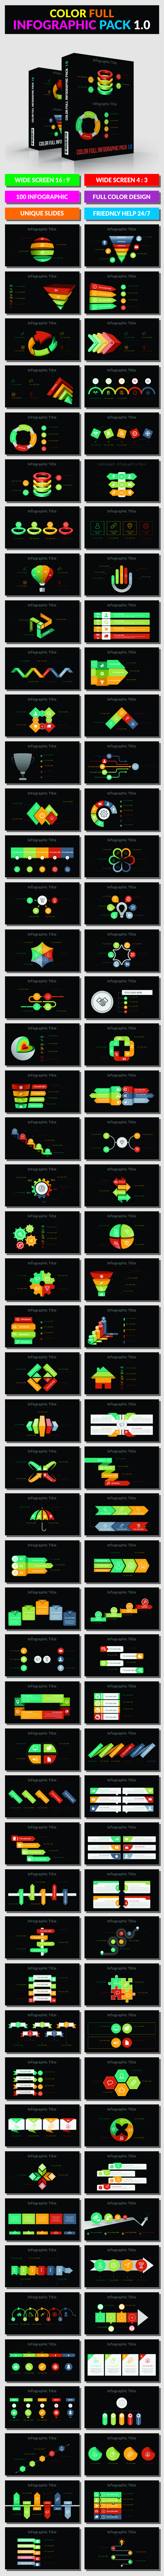 Color Full Infographic Pack 1.0 - PowerPoint Templates Presentation Templates